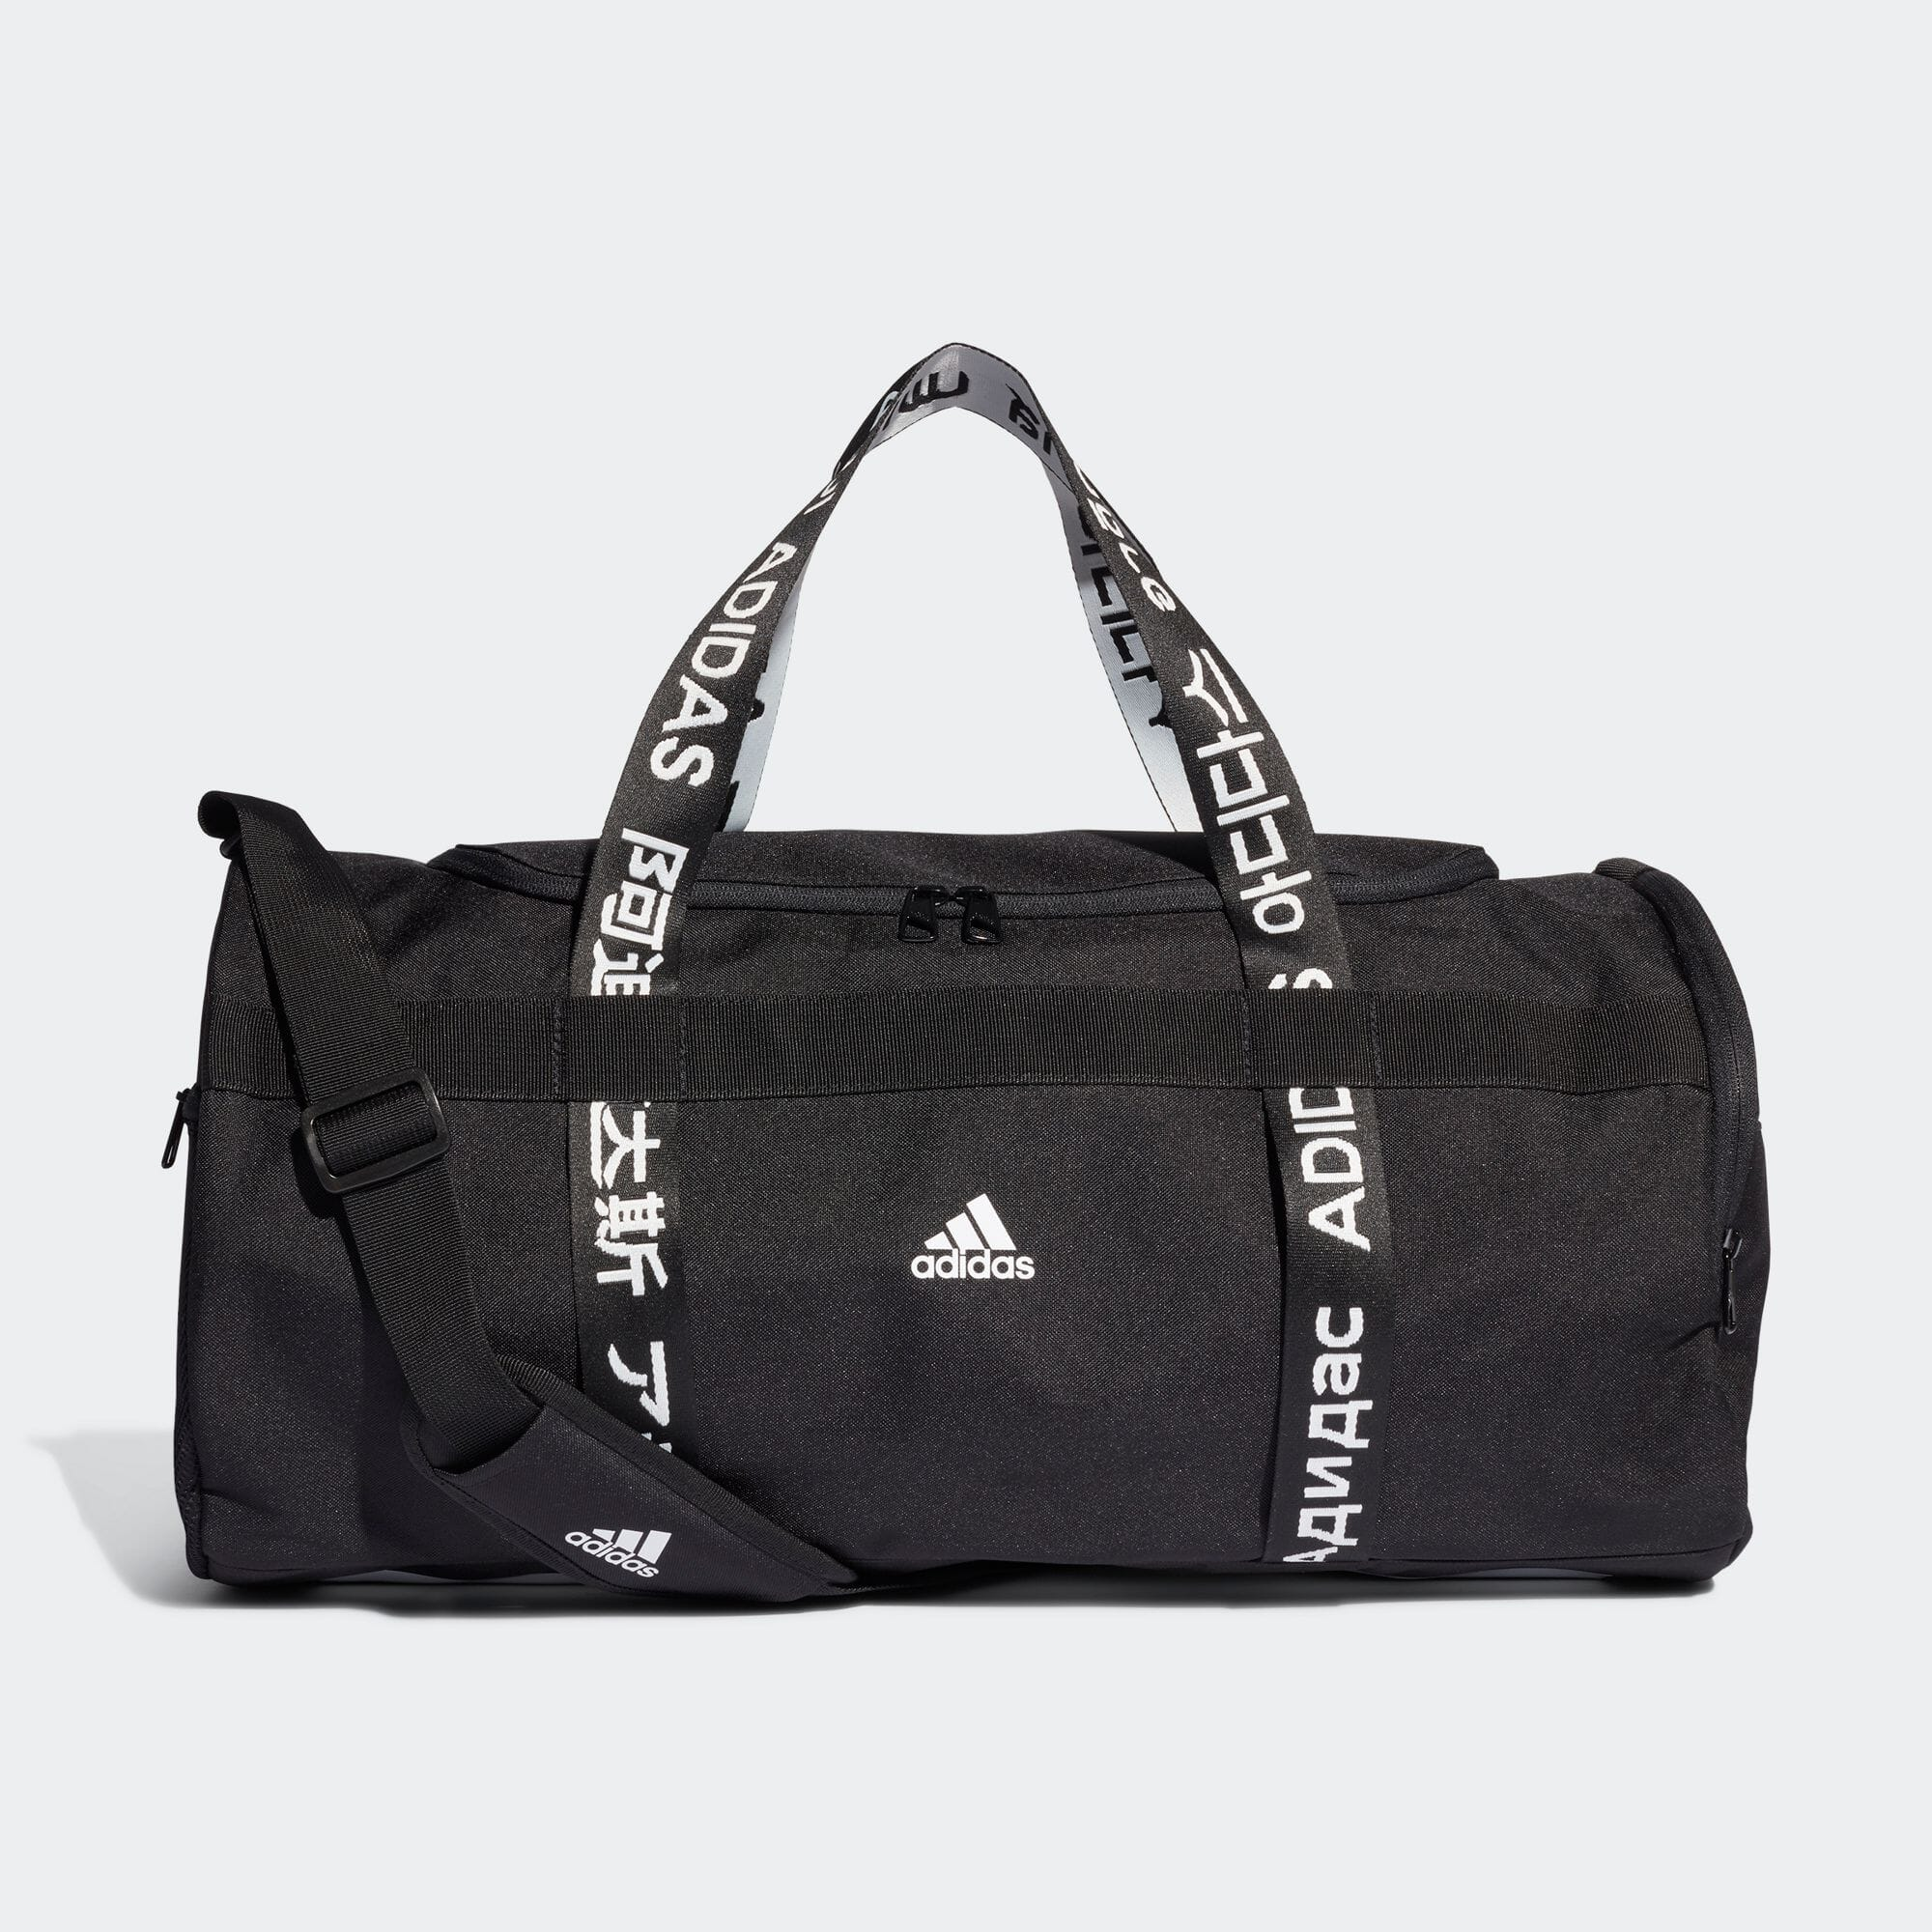 4ATHLTS ダッフルバッグ M / 4ATHLTS Duffel Bag Medium